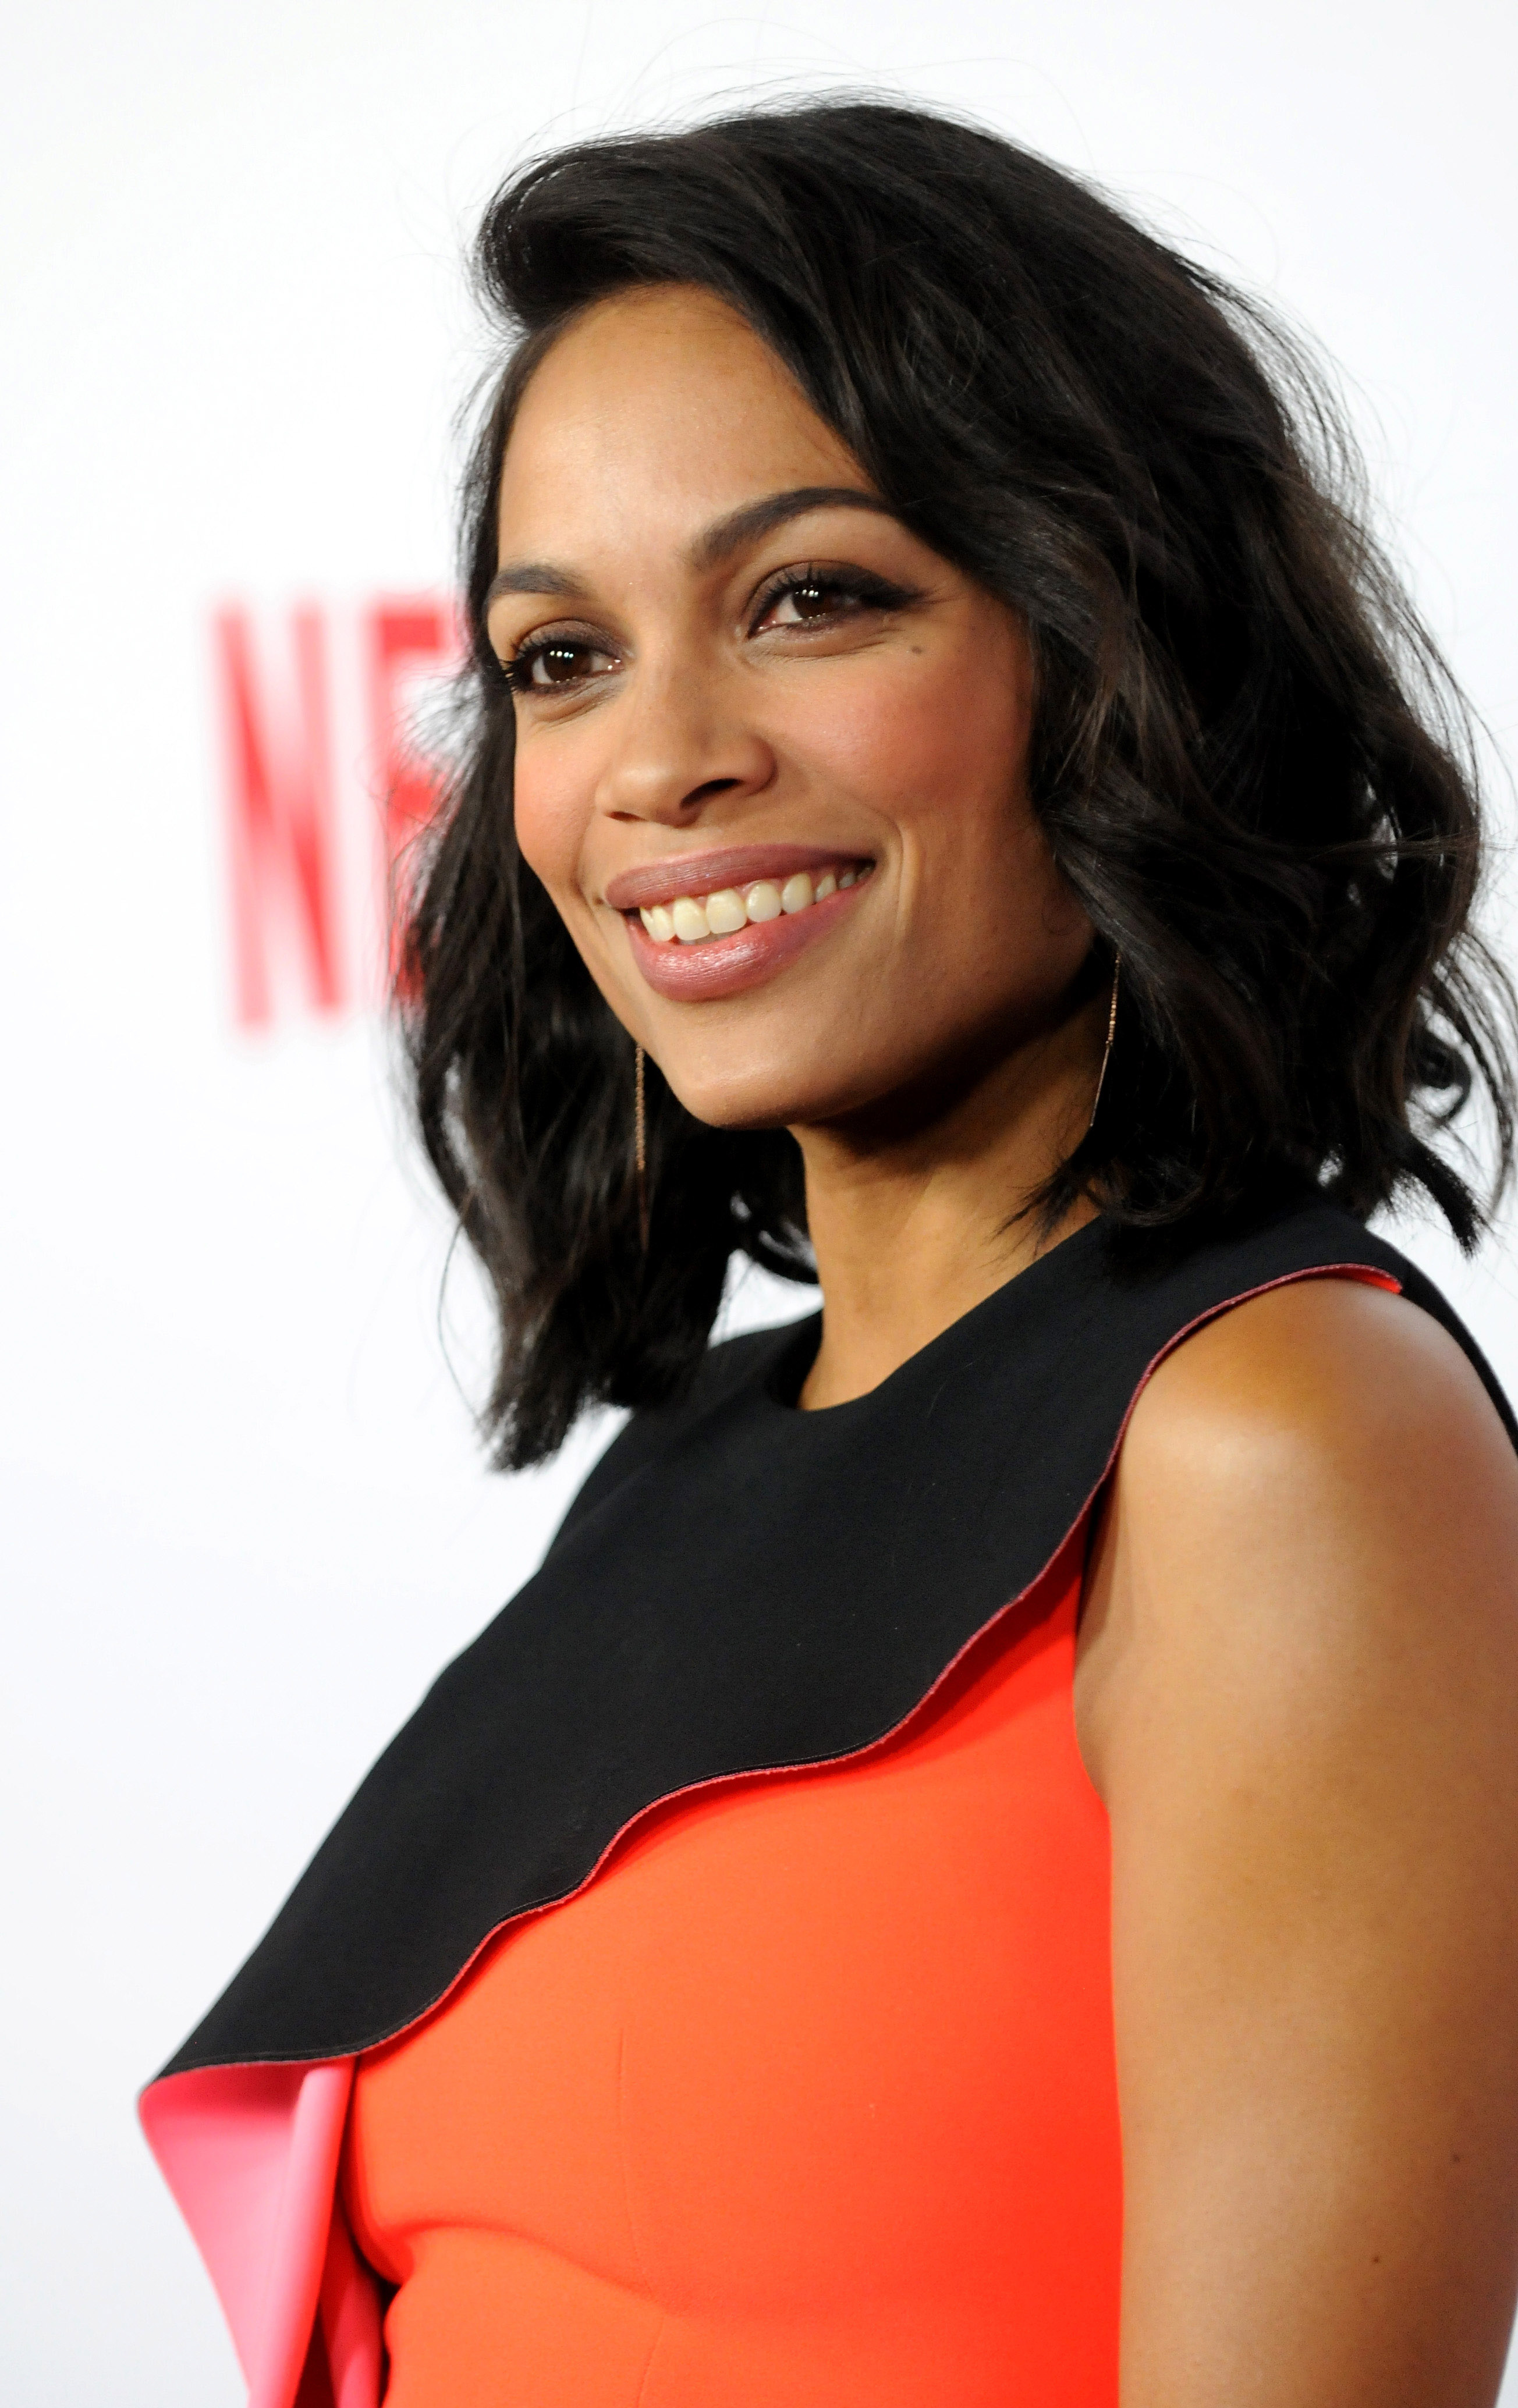 Rosario Dawson Supports Bernie Sanders in Powerful Open Letter